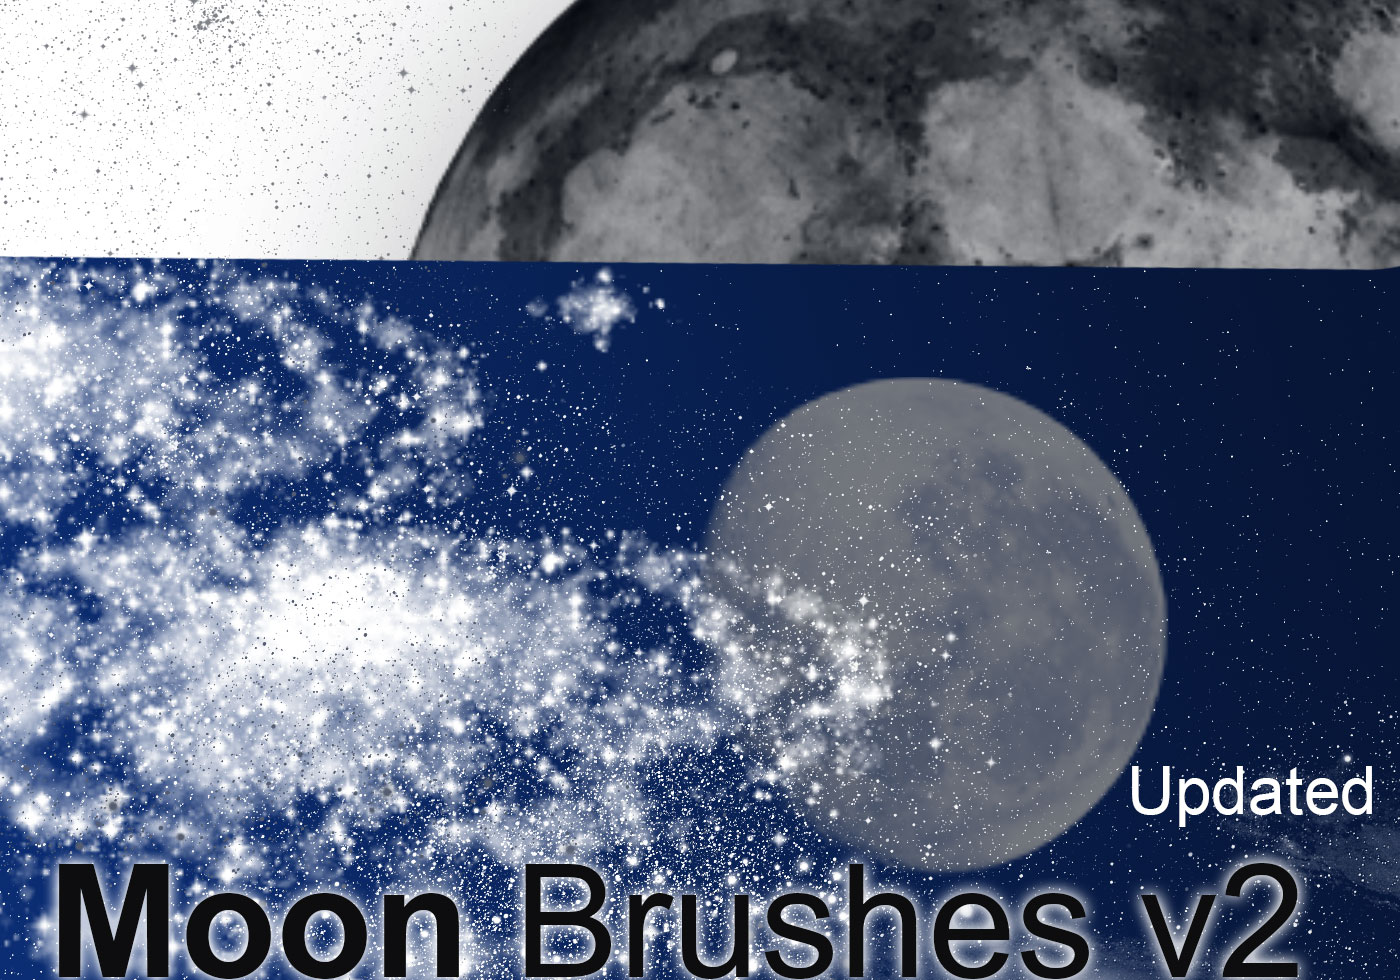 Moon Stars Sky Dust And More Free Photoshop Brushes At Brusheezy Solar System Diagram In Wireframe Style Stock Vector C Bigldesign